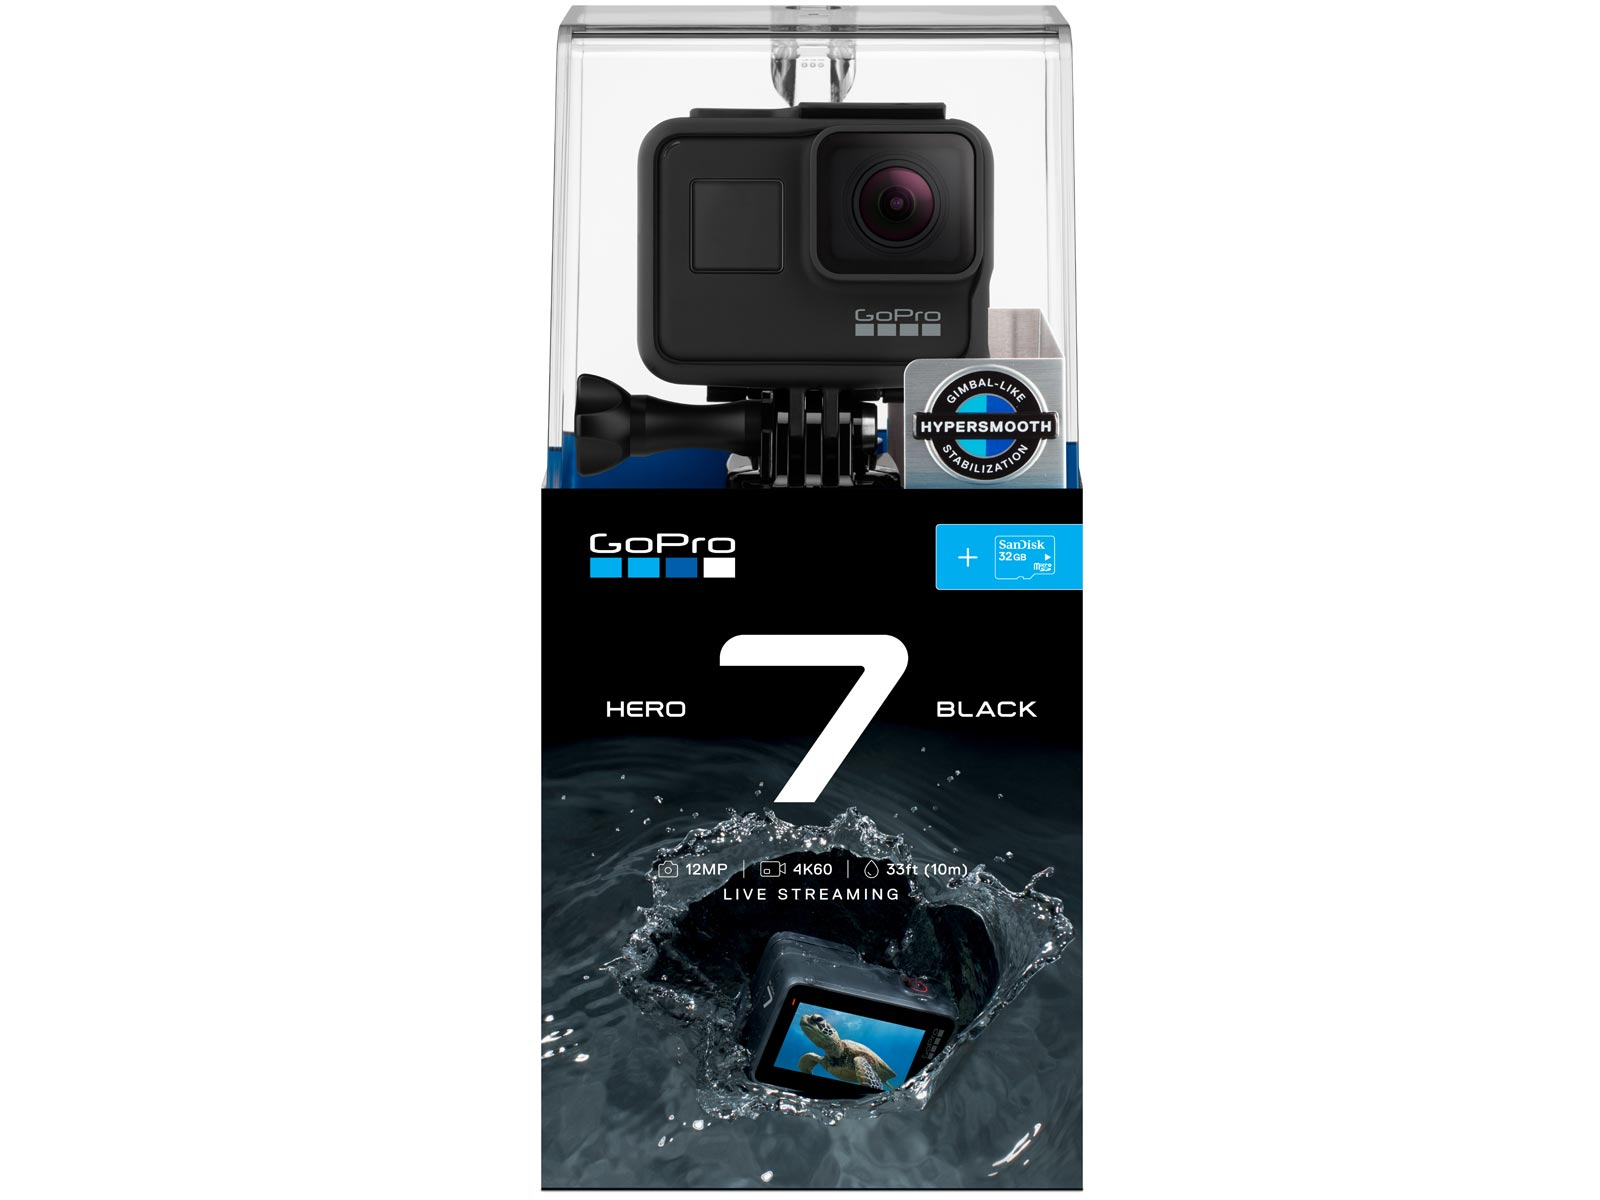 Canon Portable Printer >> GoPro Hero7 Black | Action Camera | Camera Centre